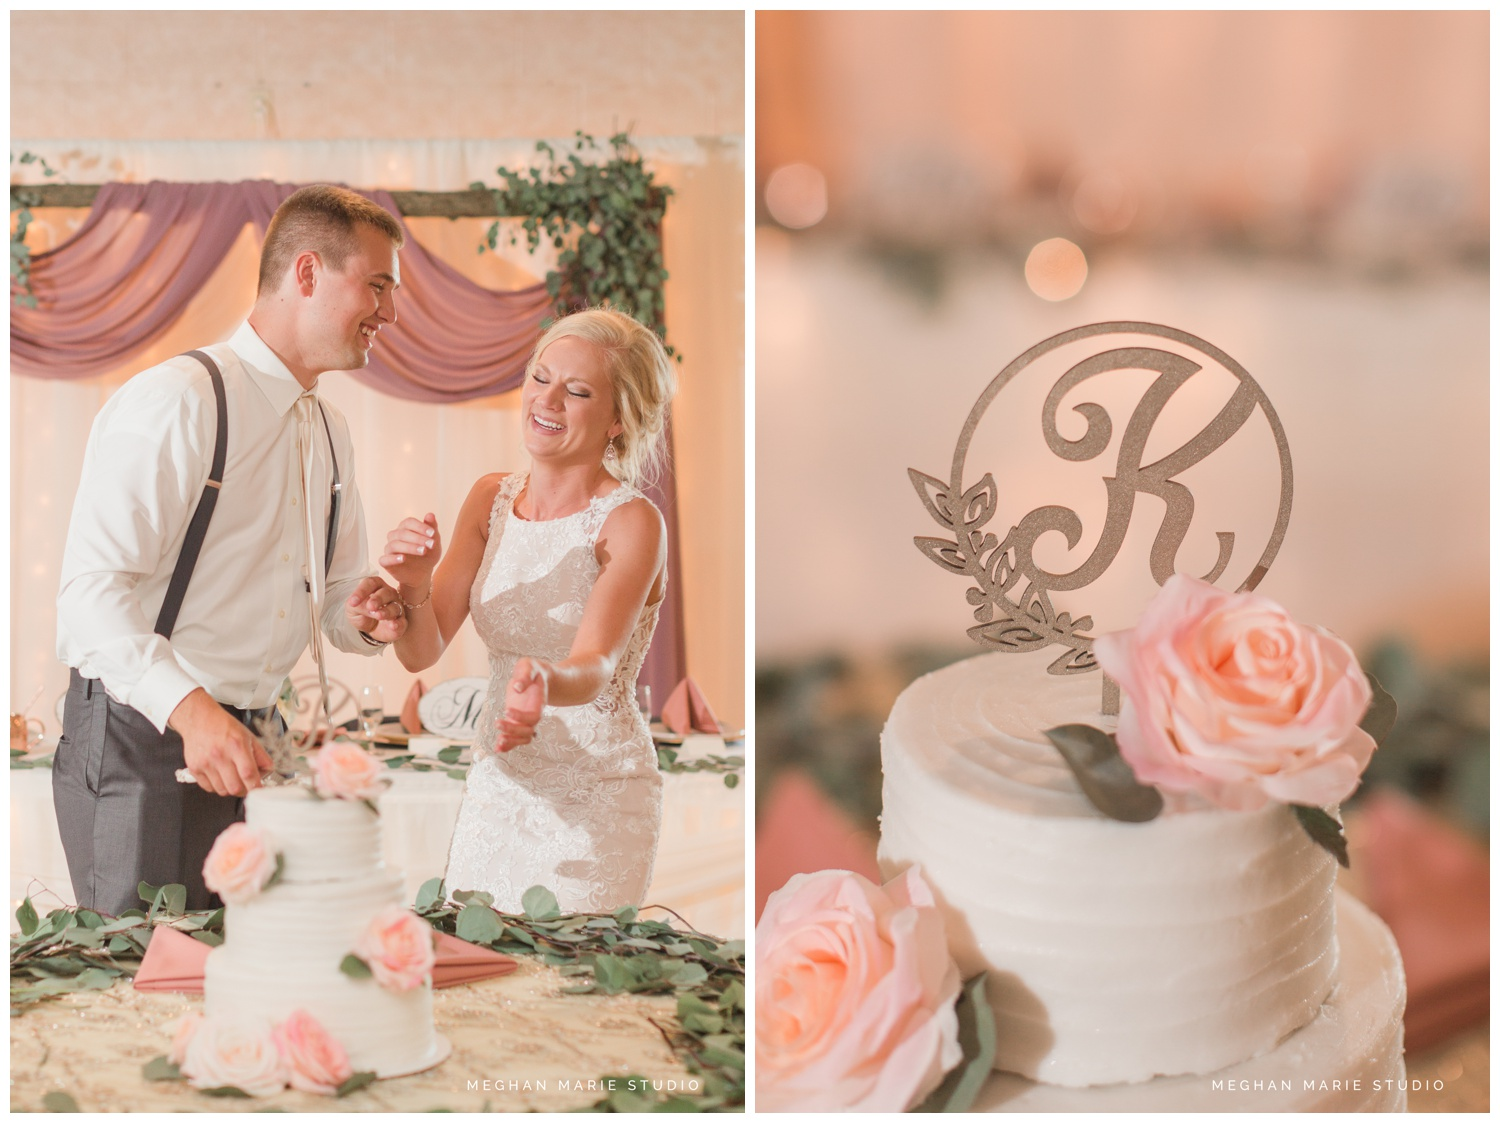 meghan marie studio wedding photographer ohio troy dayton columbus small town rustic rural farm cows vintage mauves dusty rose pinks whites ivorys grays f1 sound paper lanterns pearls_0651.jpg